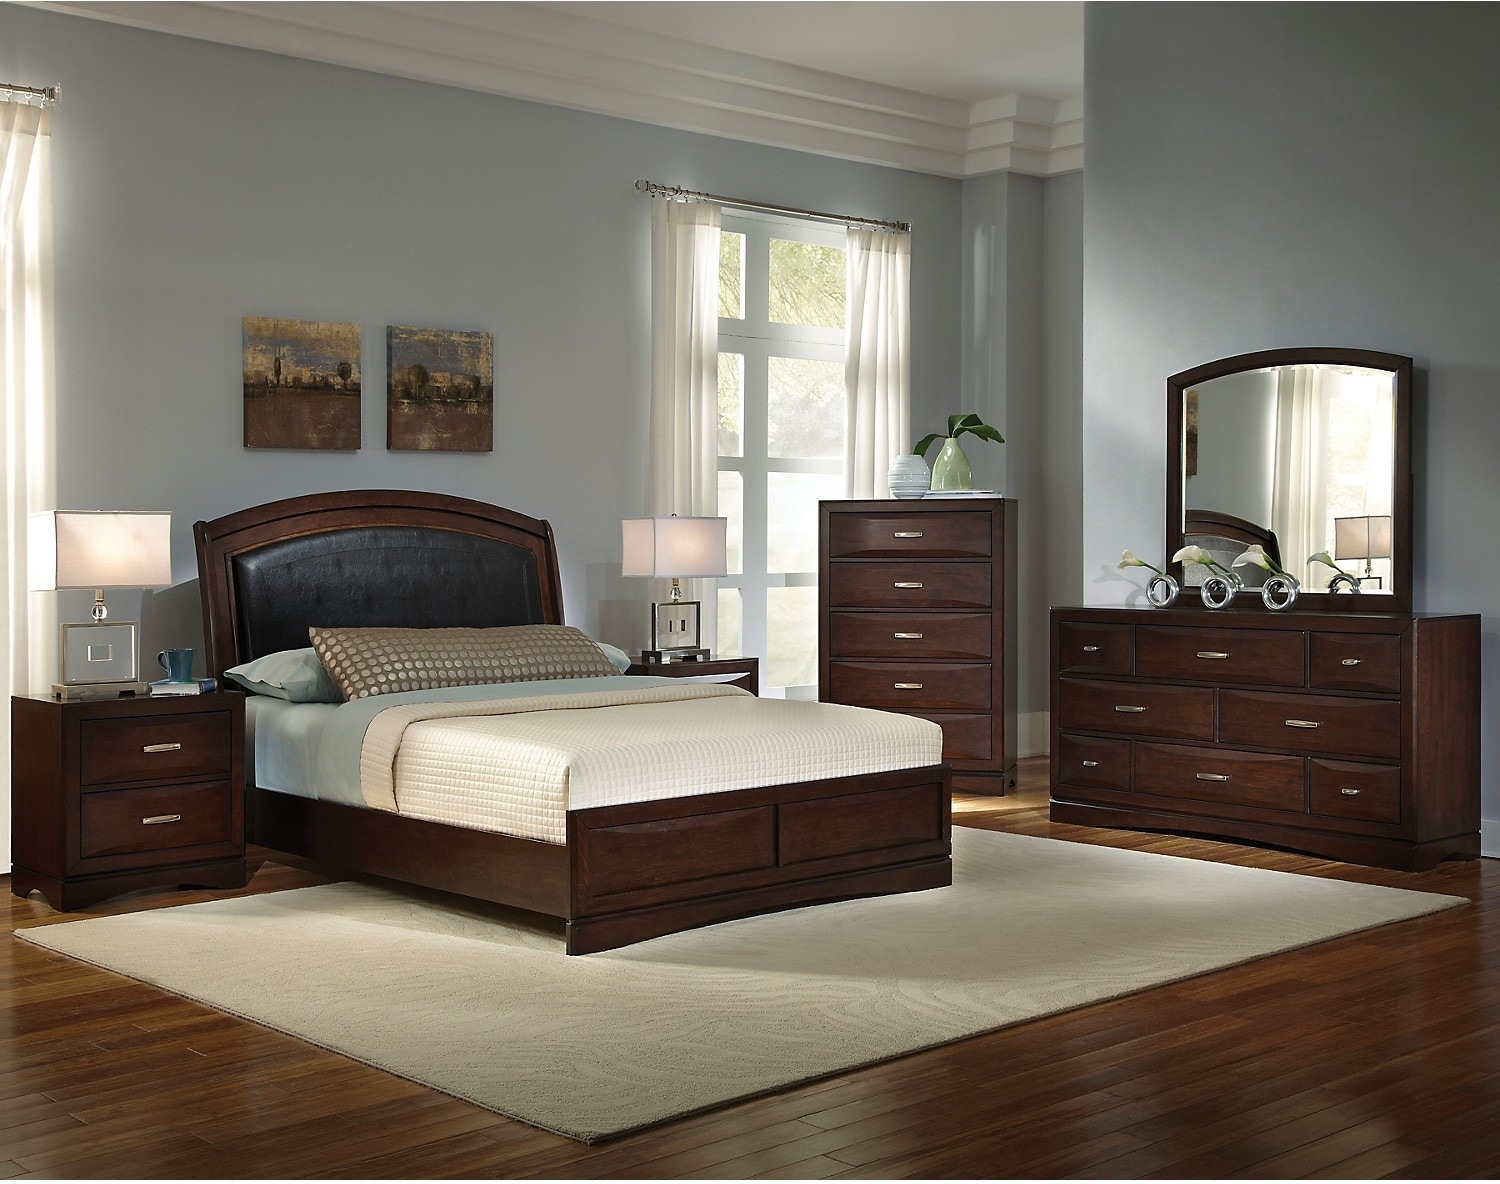 Beverly 8 piece king bedroom set the brick for Bedding room furniture